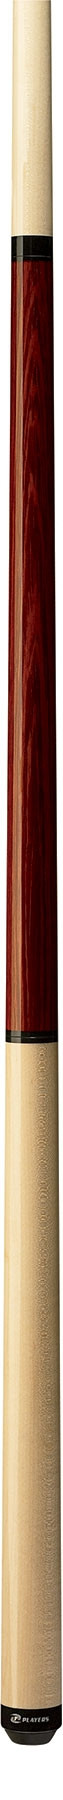 Players JB8 Maple and Rengas Jump Break Pool Cue Stick